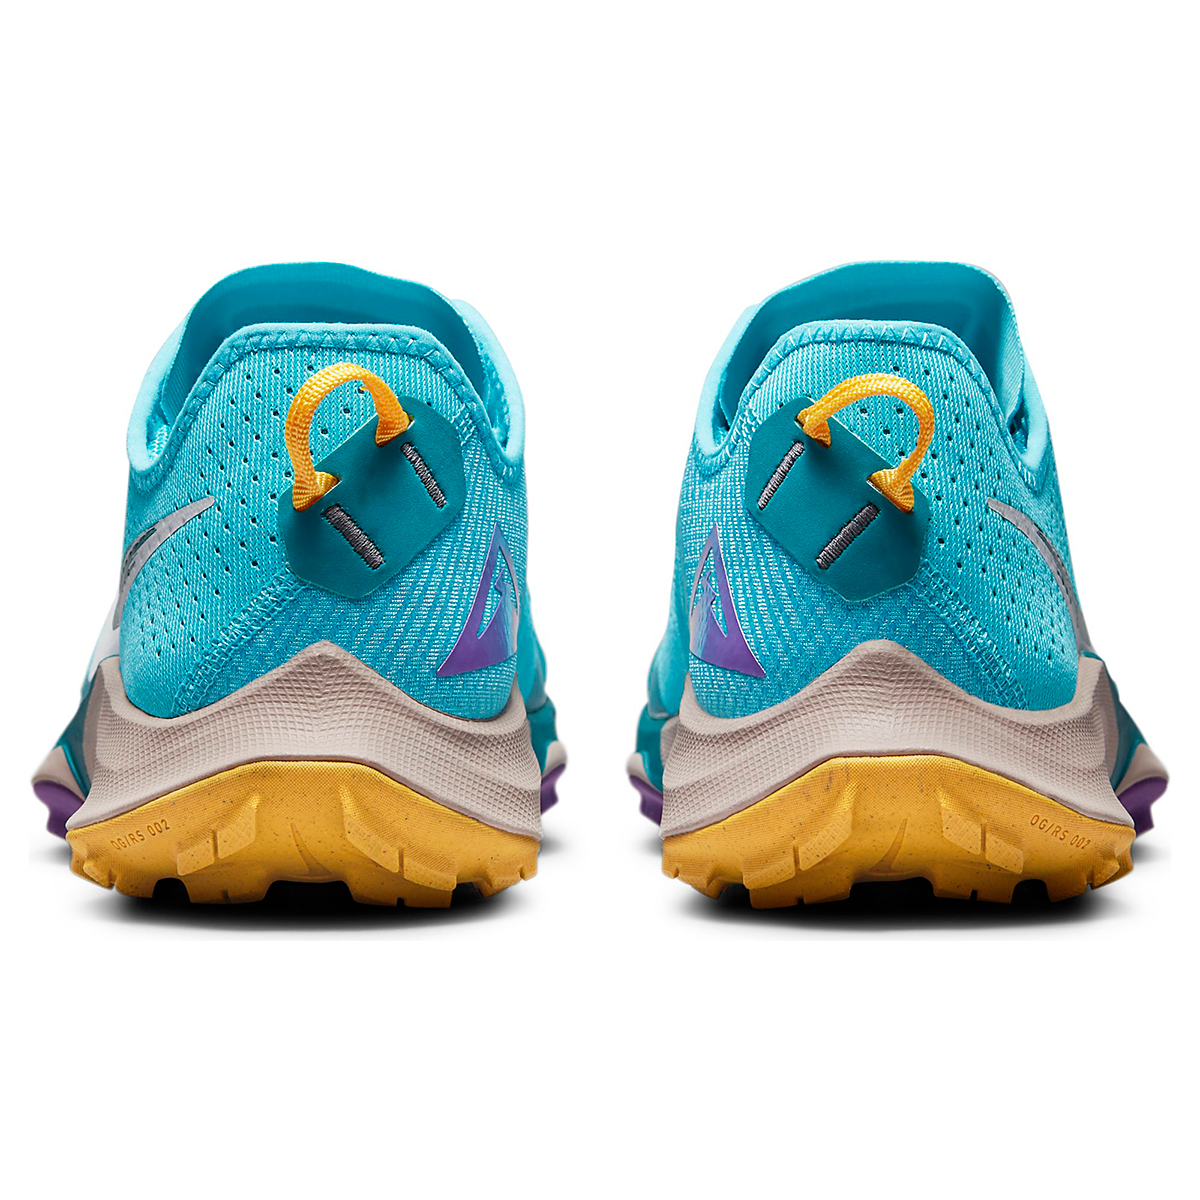 Men's Nike Air Zoom Terra Kiger 7 Trail Running Shoe - Color: Turquoise Blue/White/Mystic Teal - Size: 6 - Width: Regular, Turquoise Blue/White/Mystic Teal, large, image 7